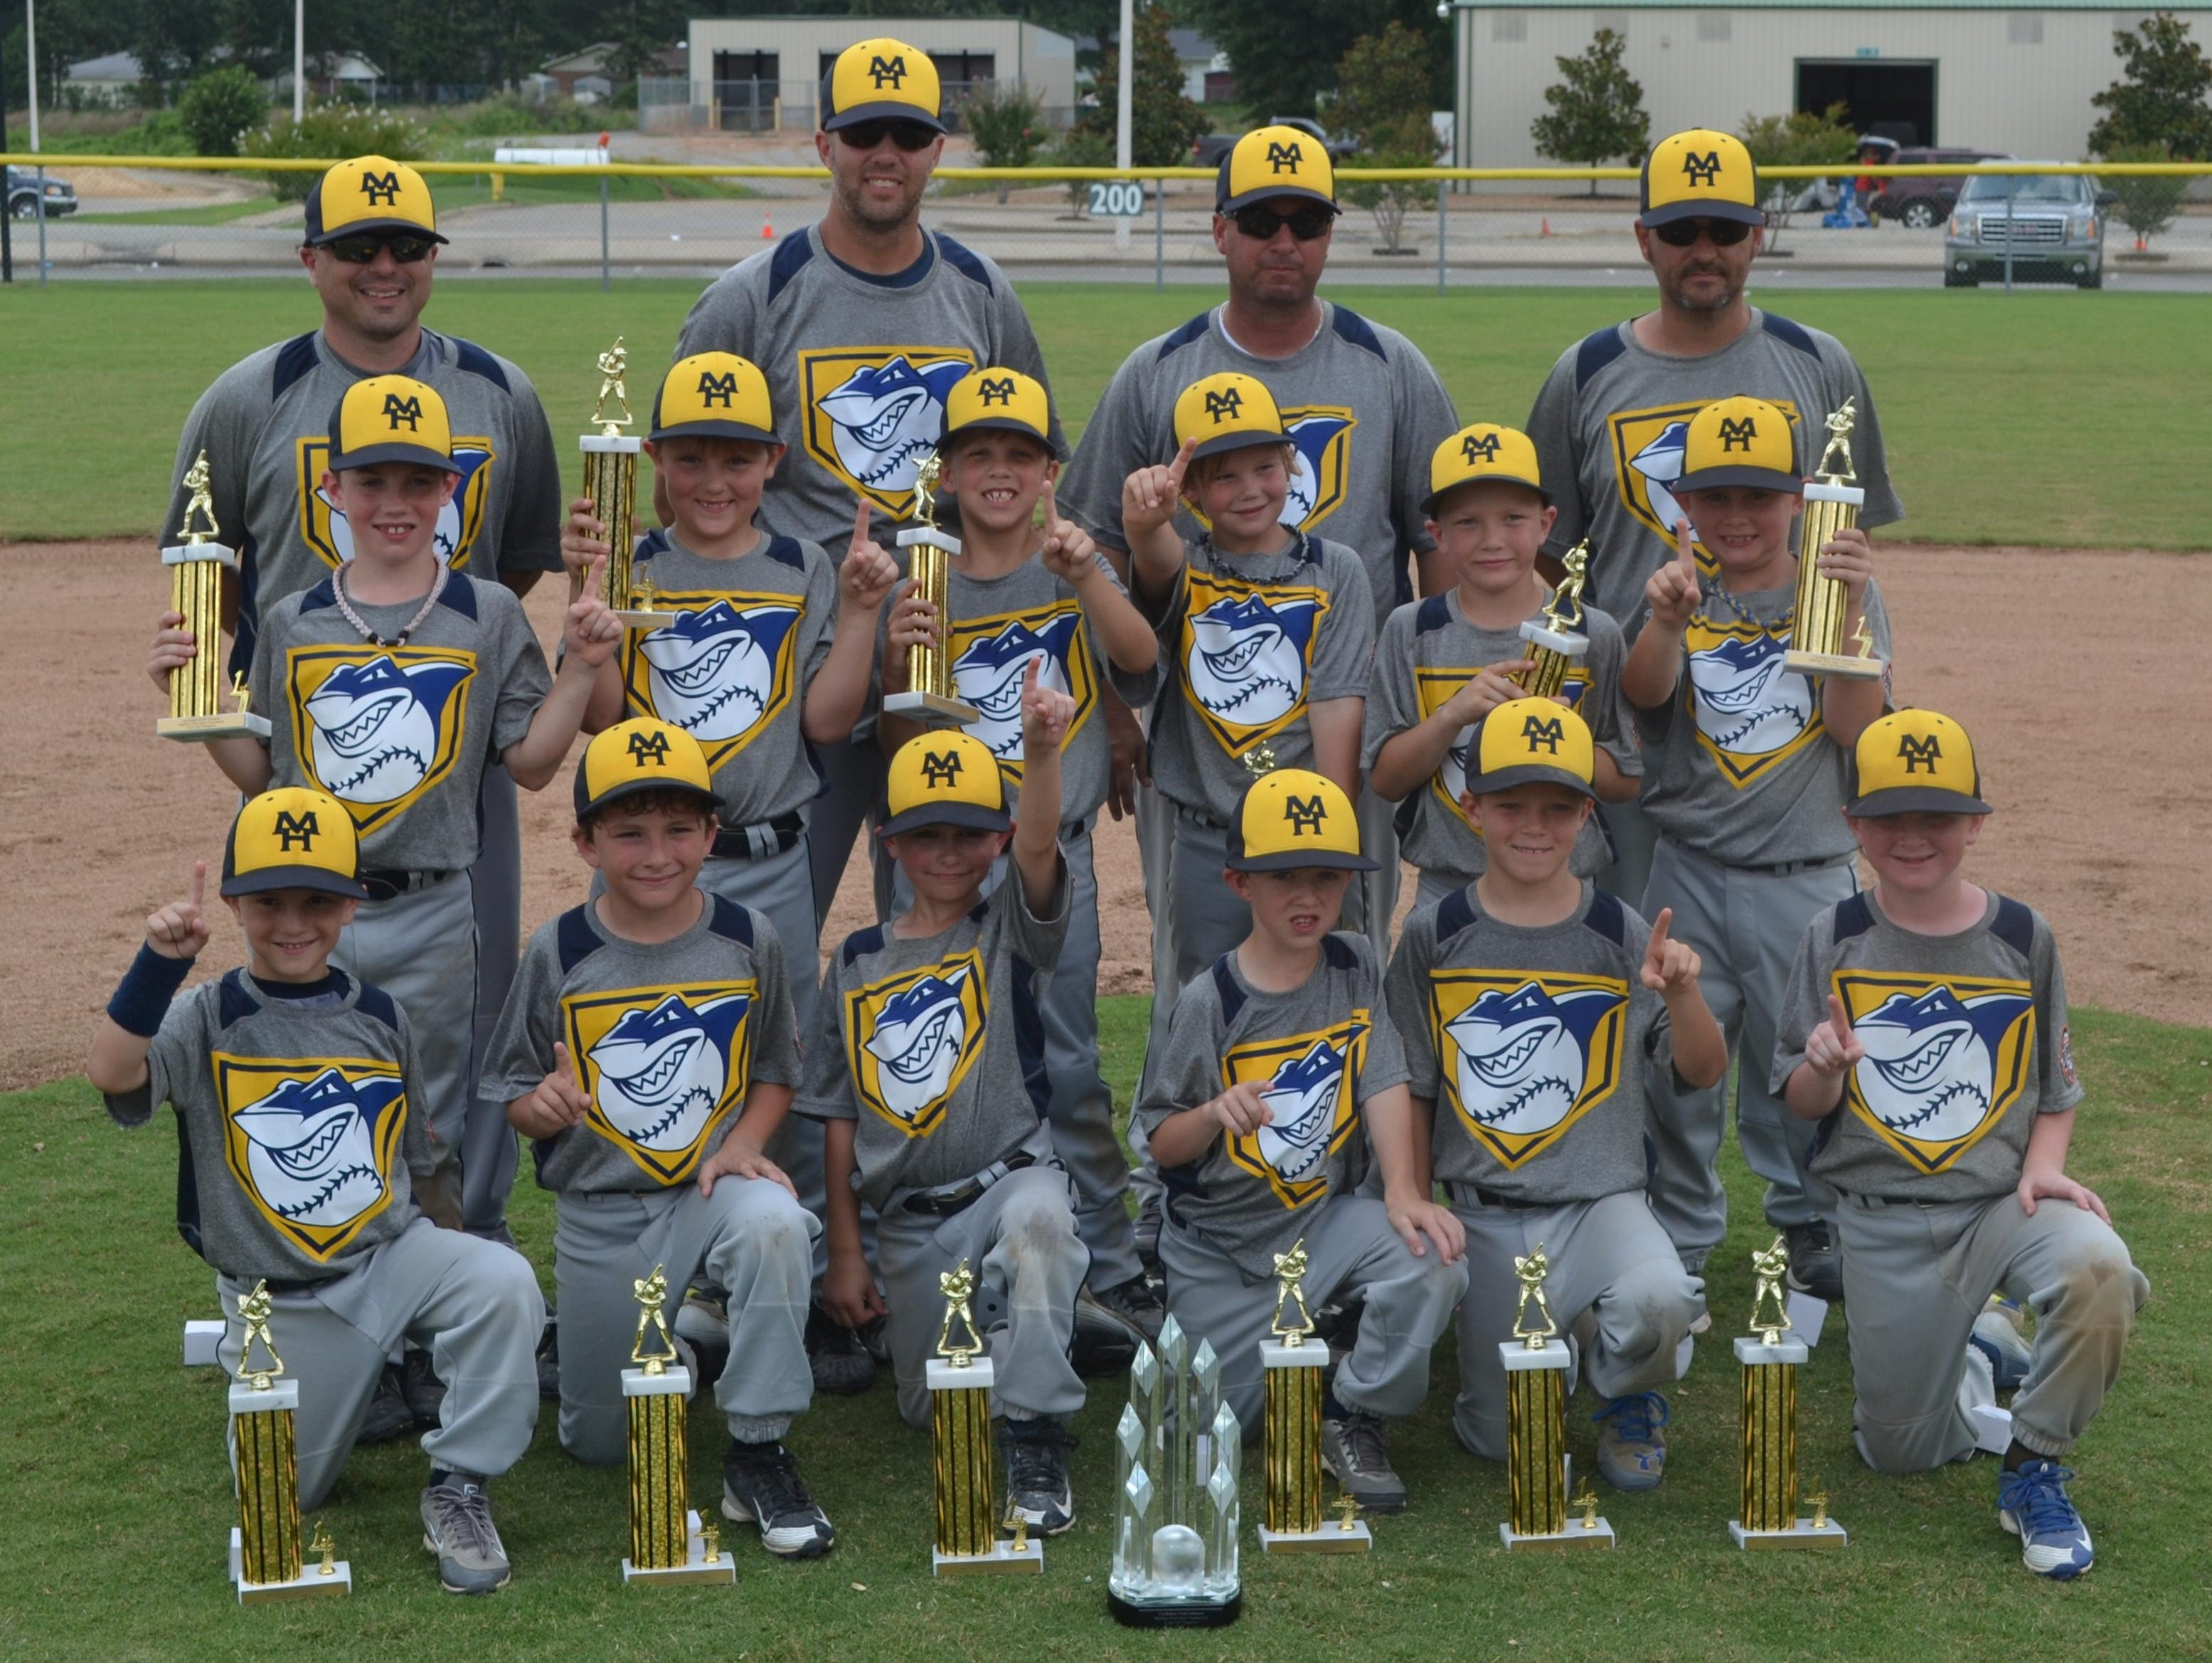 The Mountain Home Sharks recently won the 7-year-old Cal Ripken North Arkansas state championship. The Sharks defeated Paragould and Siloam Springs in pool play, then defeated Rogers 9-4, Batesville 11-1 and Blytheville 11-4 in the championship game. Team members are: first row, from left, Tate Cudworth, Cobey McGowan, Bryce Kincade, Jake Brewer, Carter Adkins, Rhett Gilbert; second row, Jackson Corp, Eston Ford, Jake Brashears, Colt Crownover, Hunter Roberts, Jax Wescoat; third row, coaches Chris Cudworth, Kyle Brashears, Andy Wescoat and Jason Kincade.